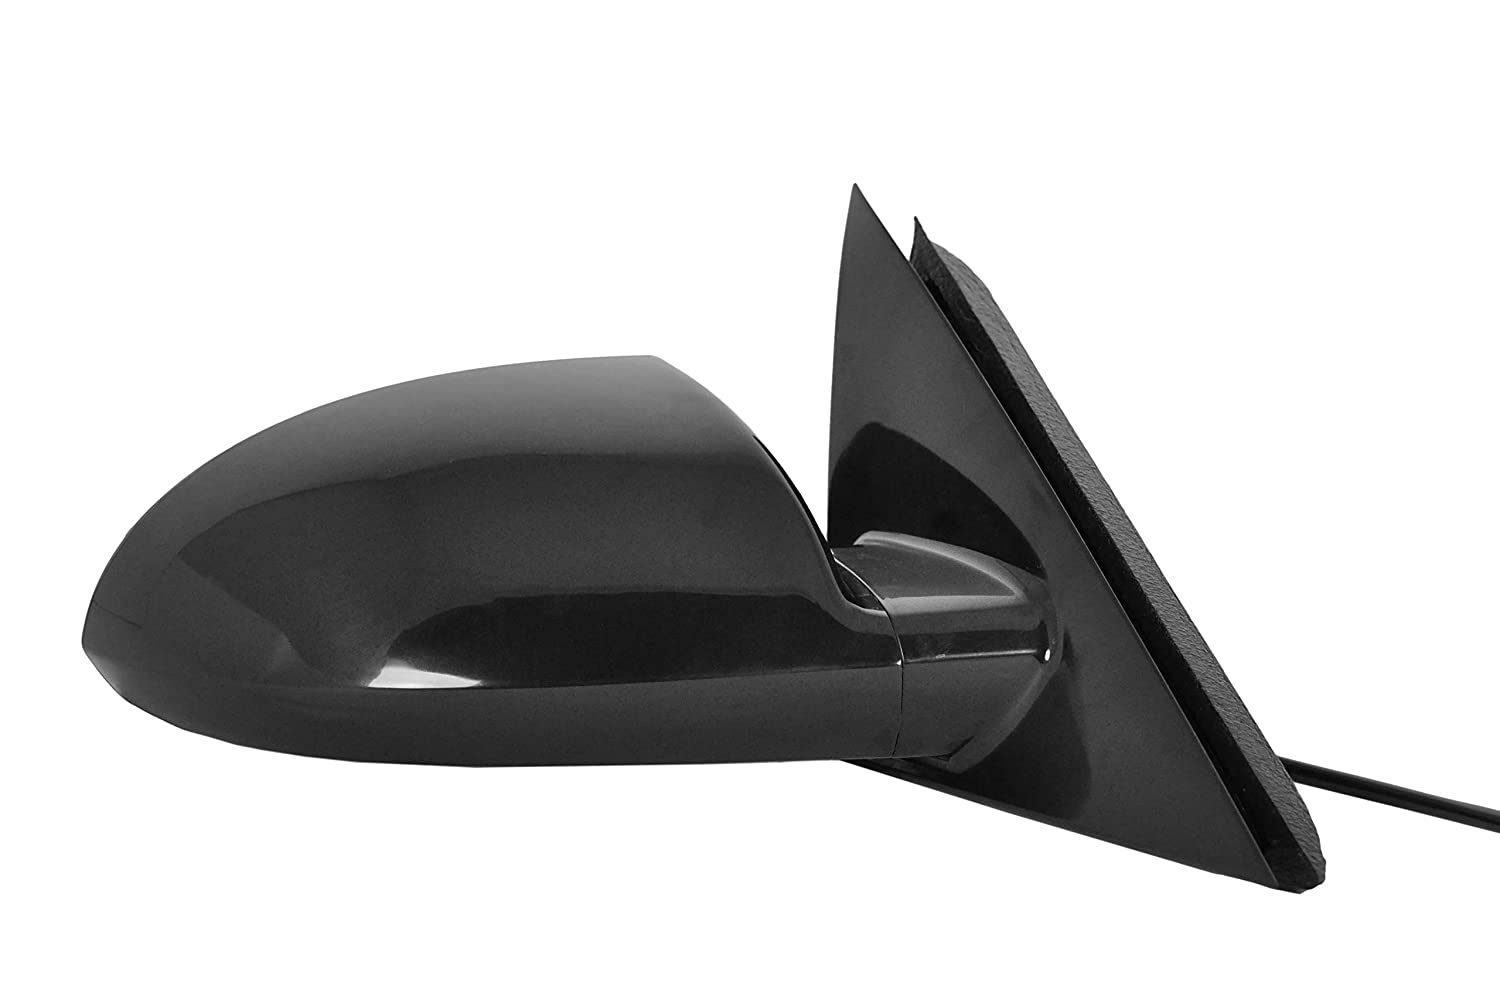 Right Passenger Side Mirror for Chevy Impala (2006 2007 2008 2009 2010 2011 2012 2013), Impala Limited (2014 2015 2016) Unpainted Power Operated Non-Heated Non-Folding Door Mirror